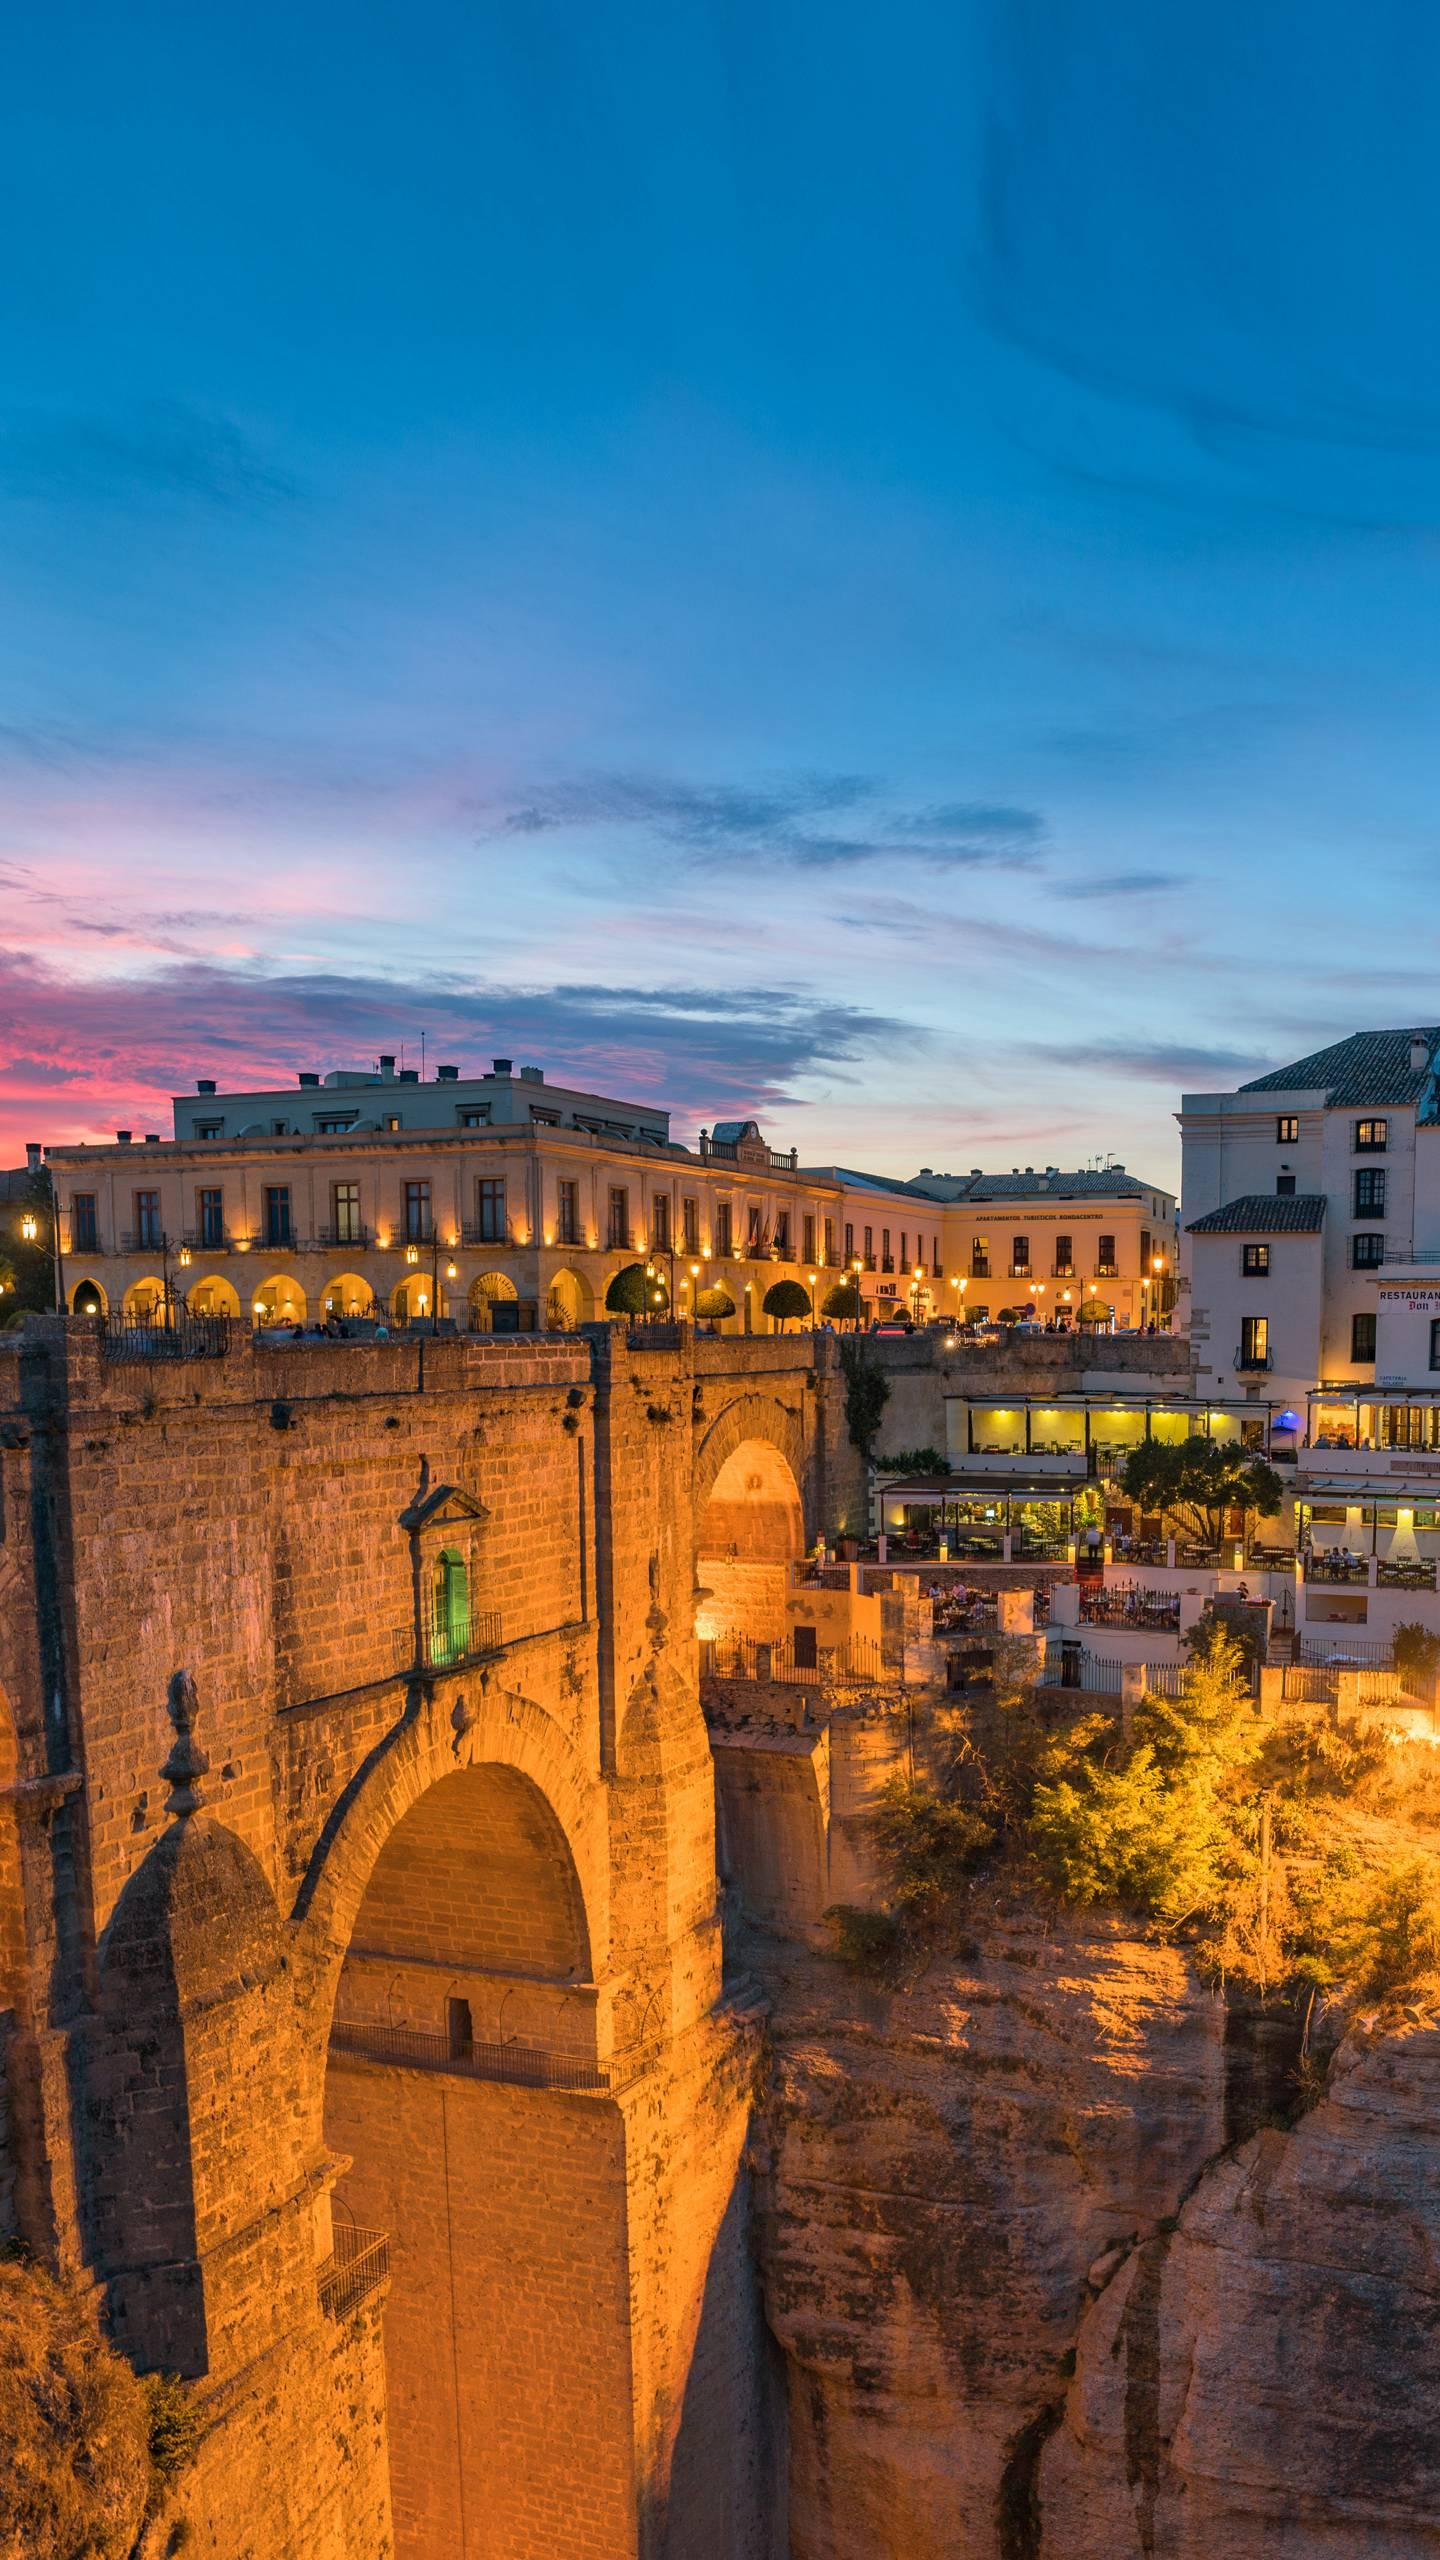 Spain - Ronda. Born in the era of the Roman Empire, the old city stands on a cliff, giving a thrilling sense of beauty.